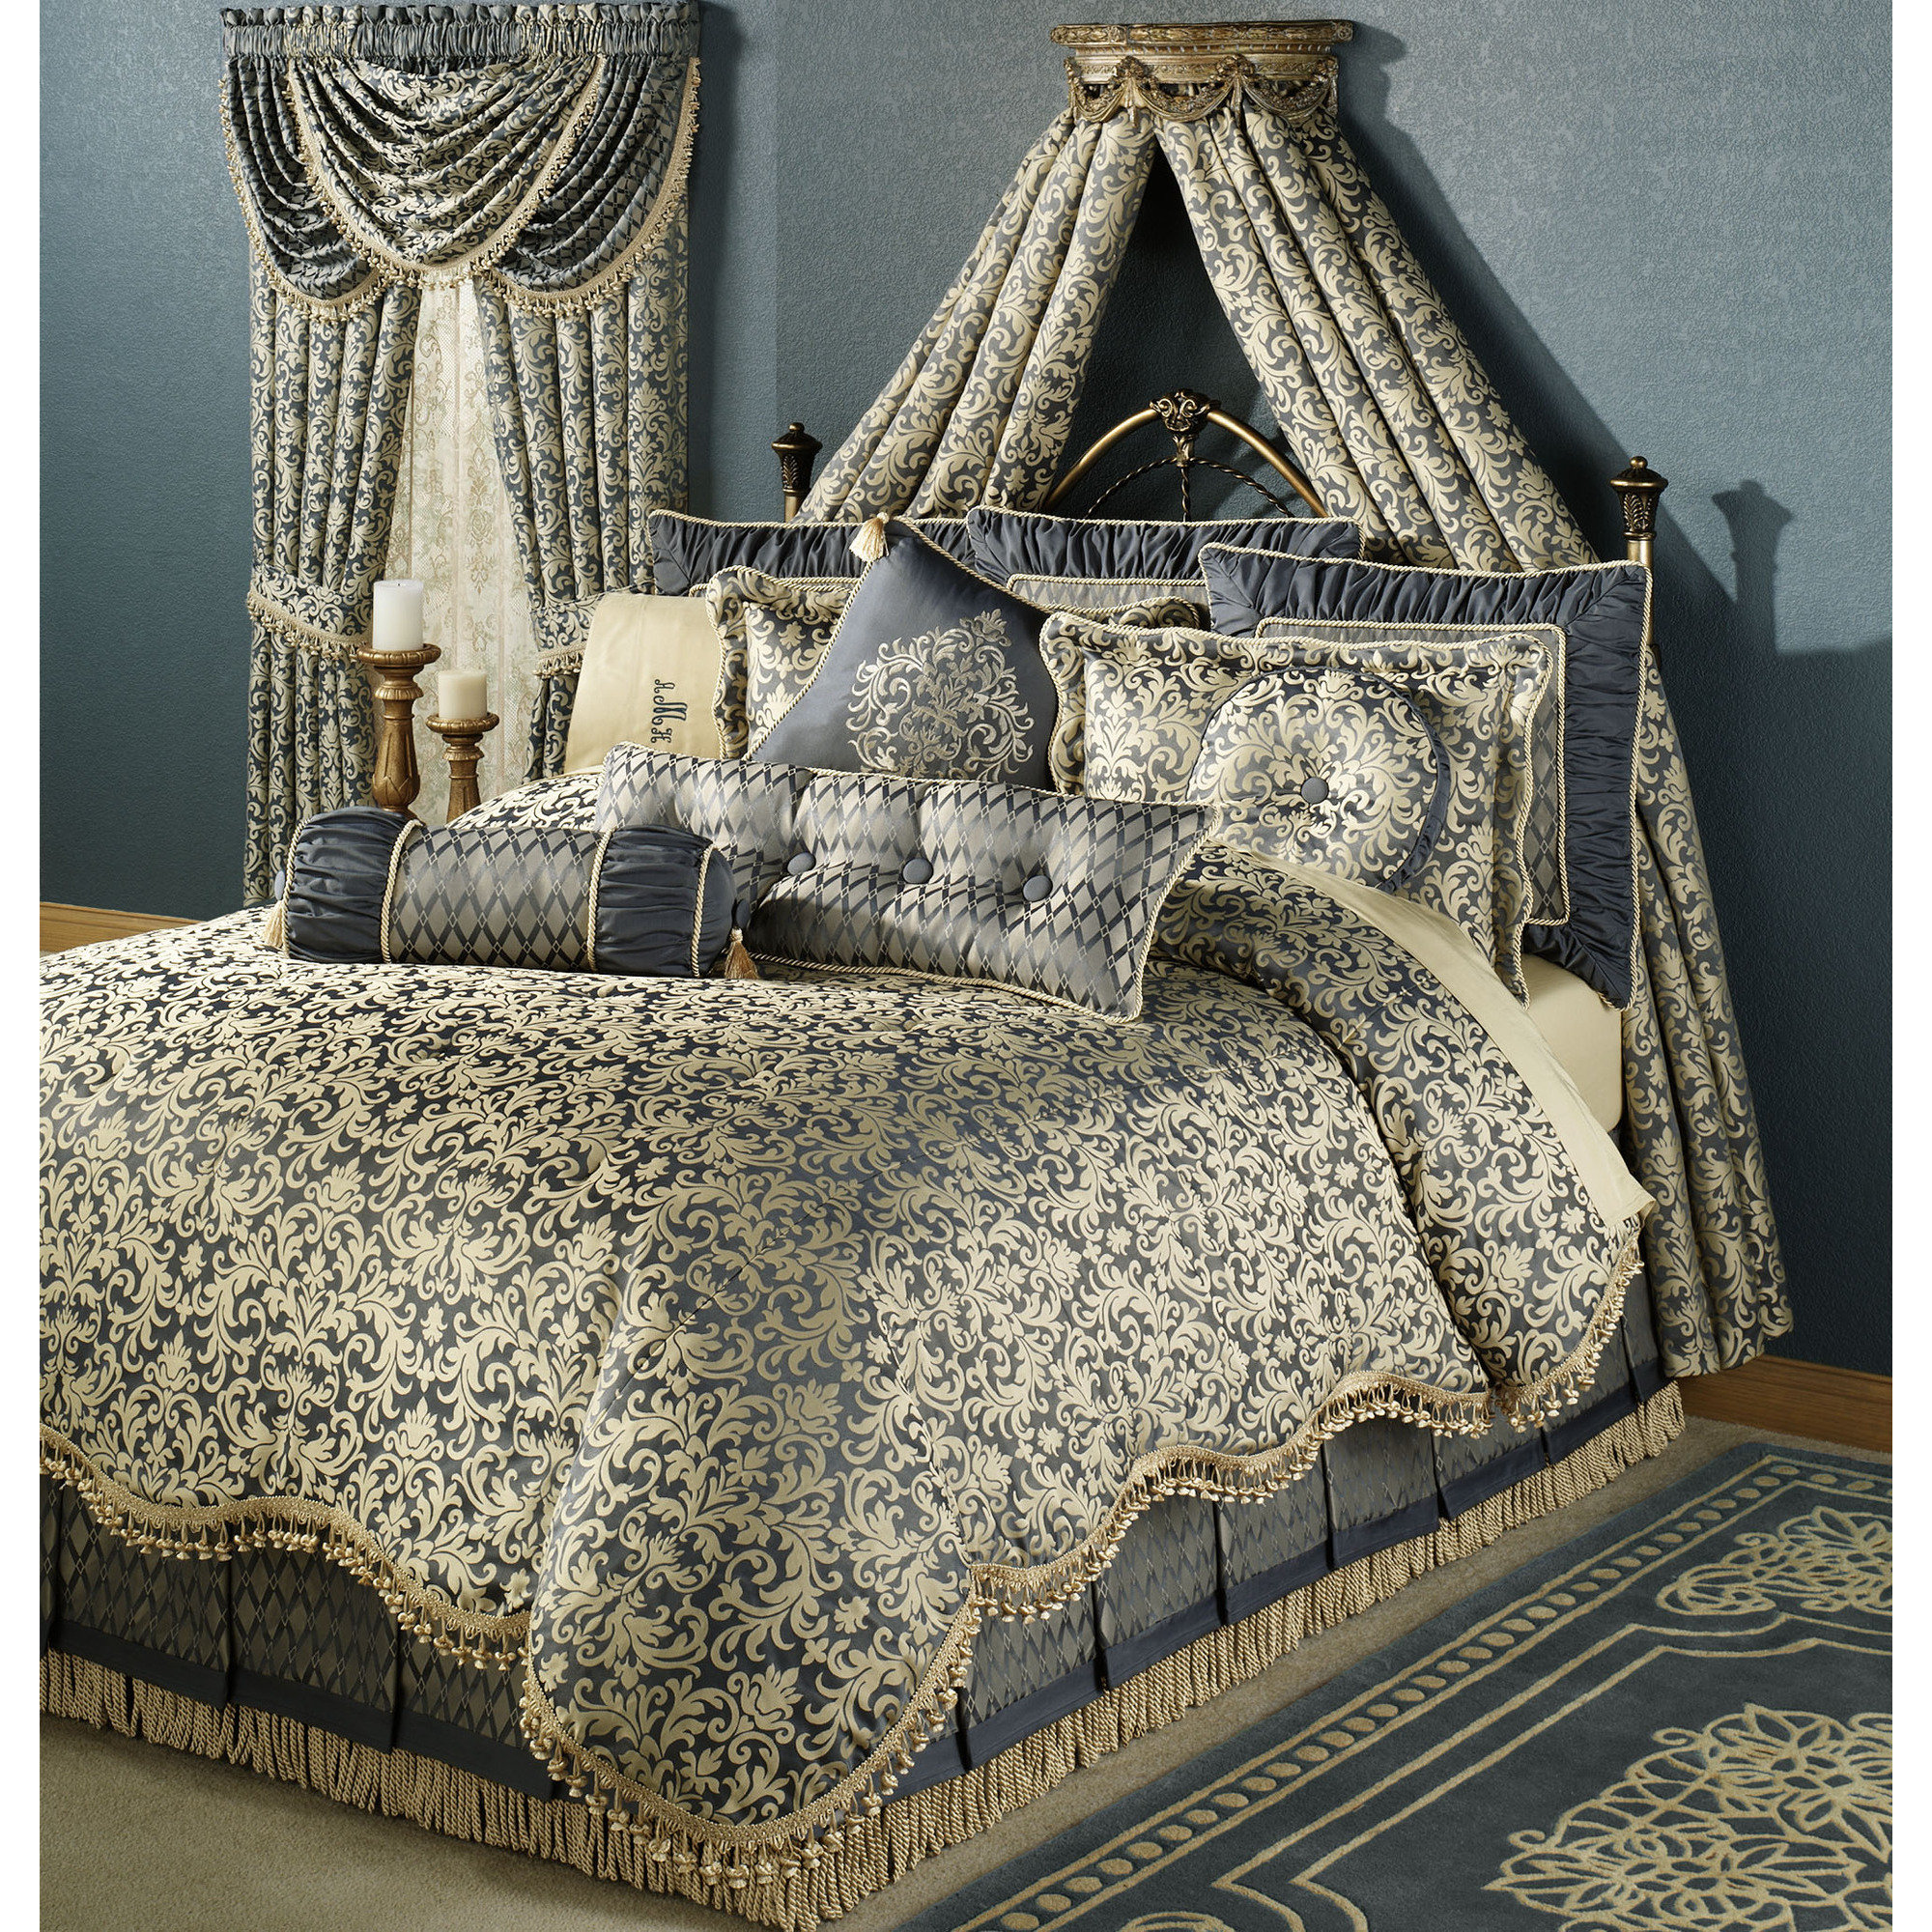 Inspiring damask bedding for bed decorating ideas with damask bedding set and damask crib bedding